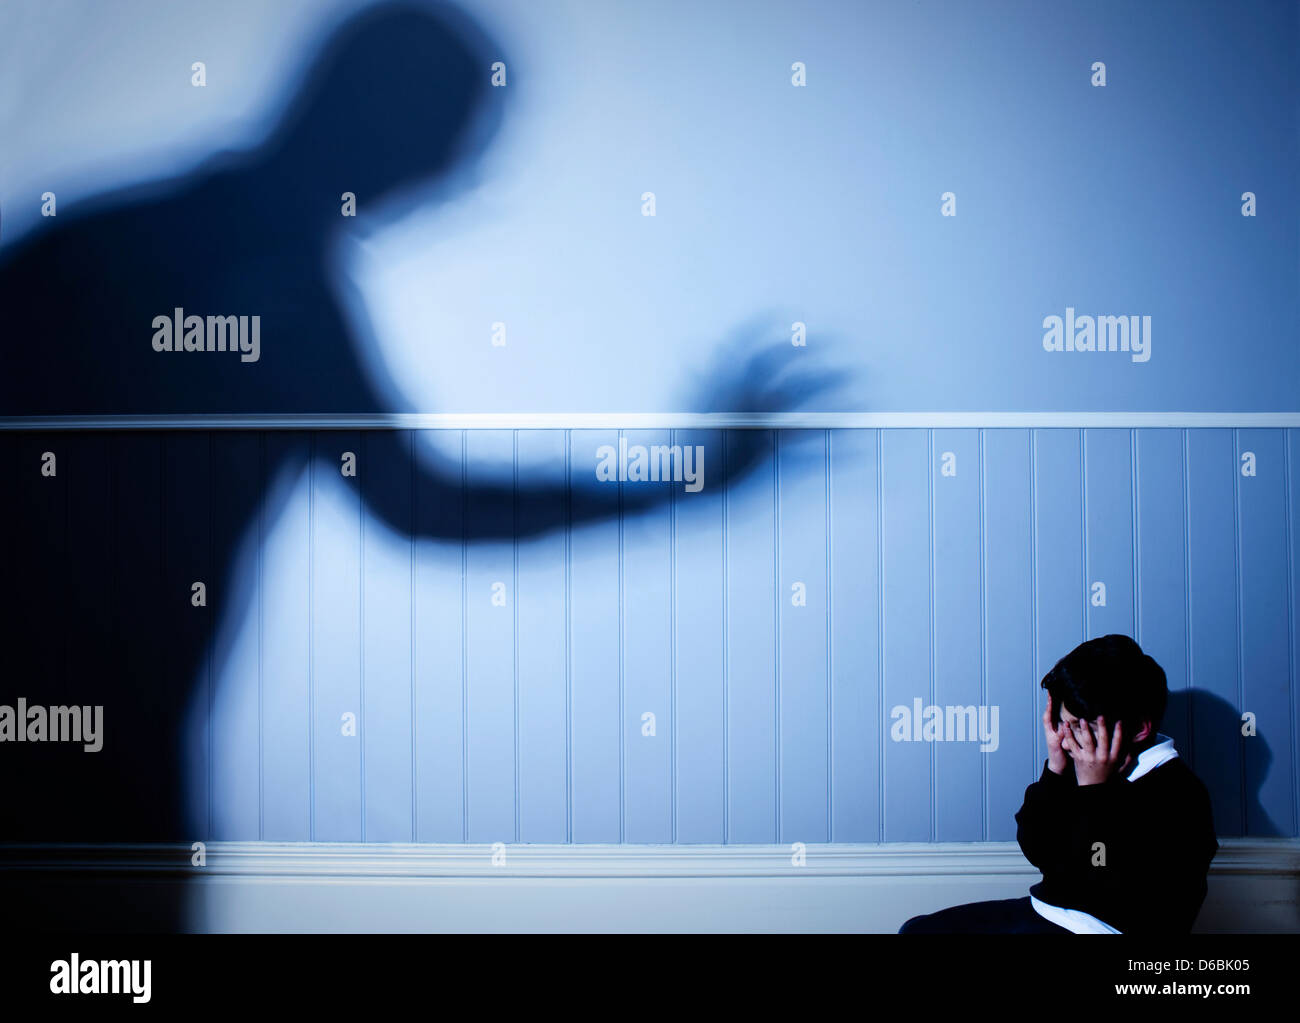 Shadow looming over frightened boy - Stock Image